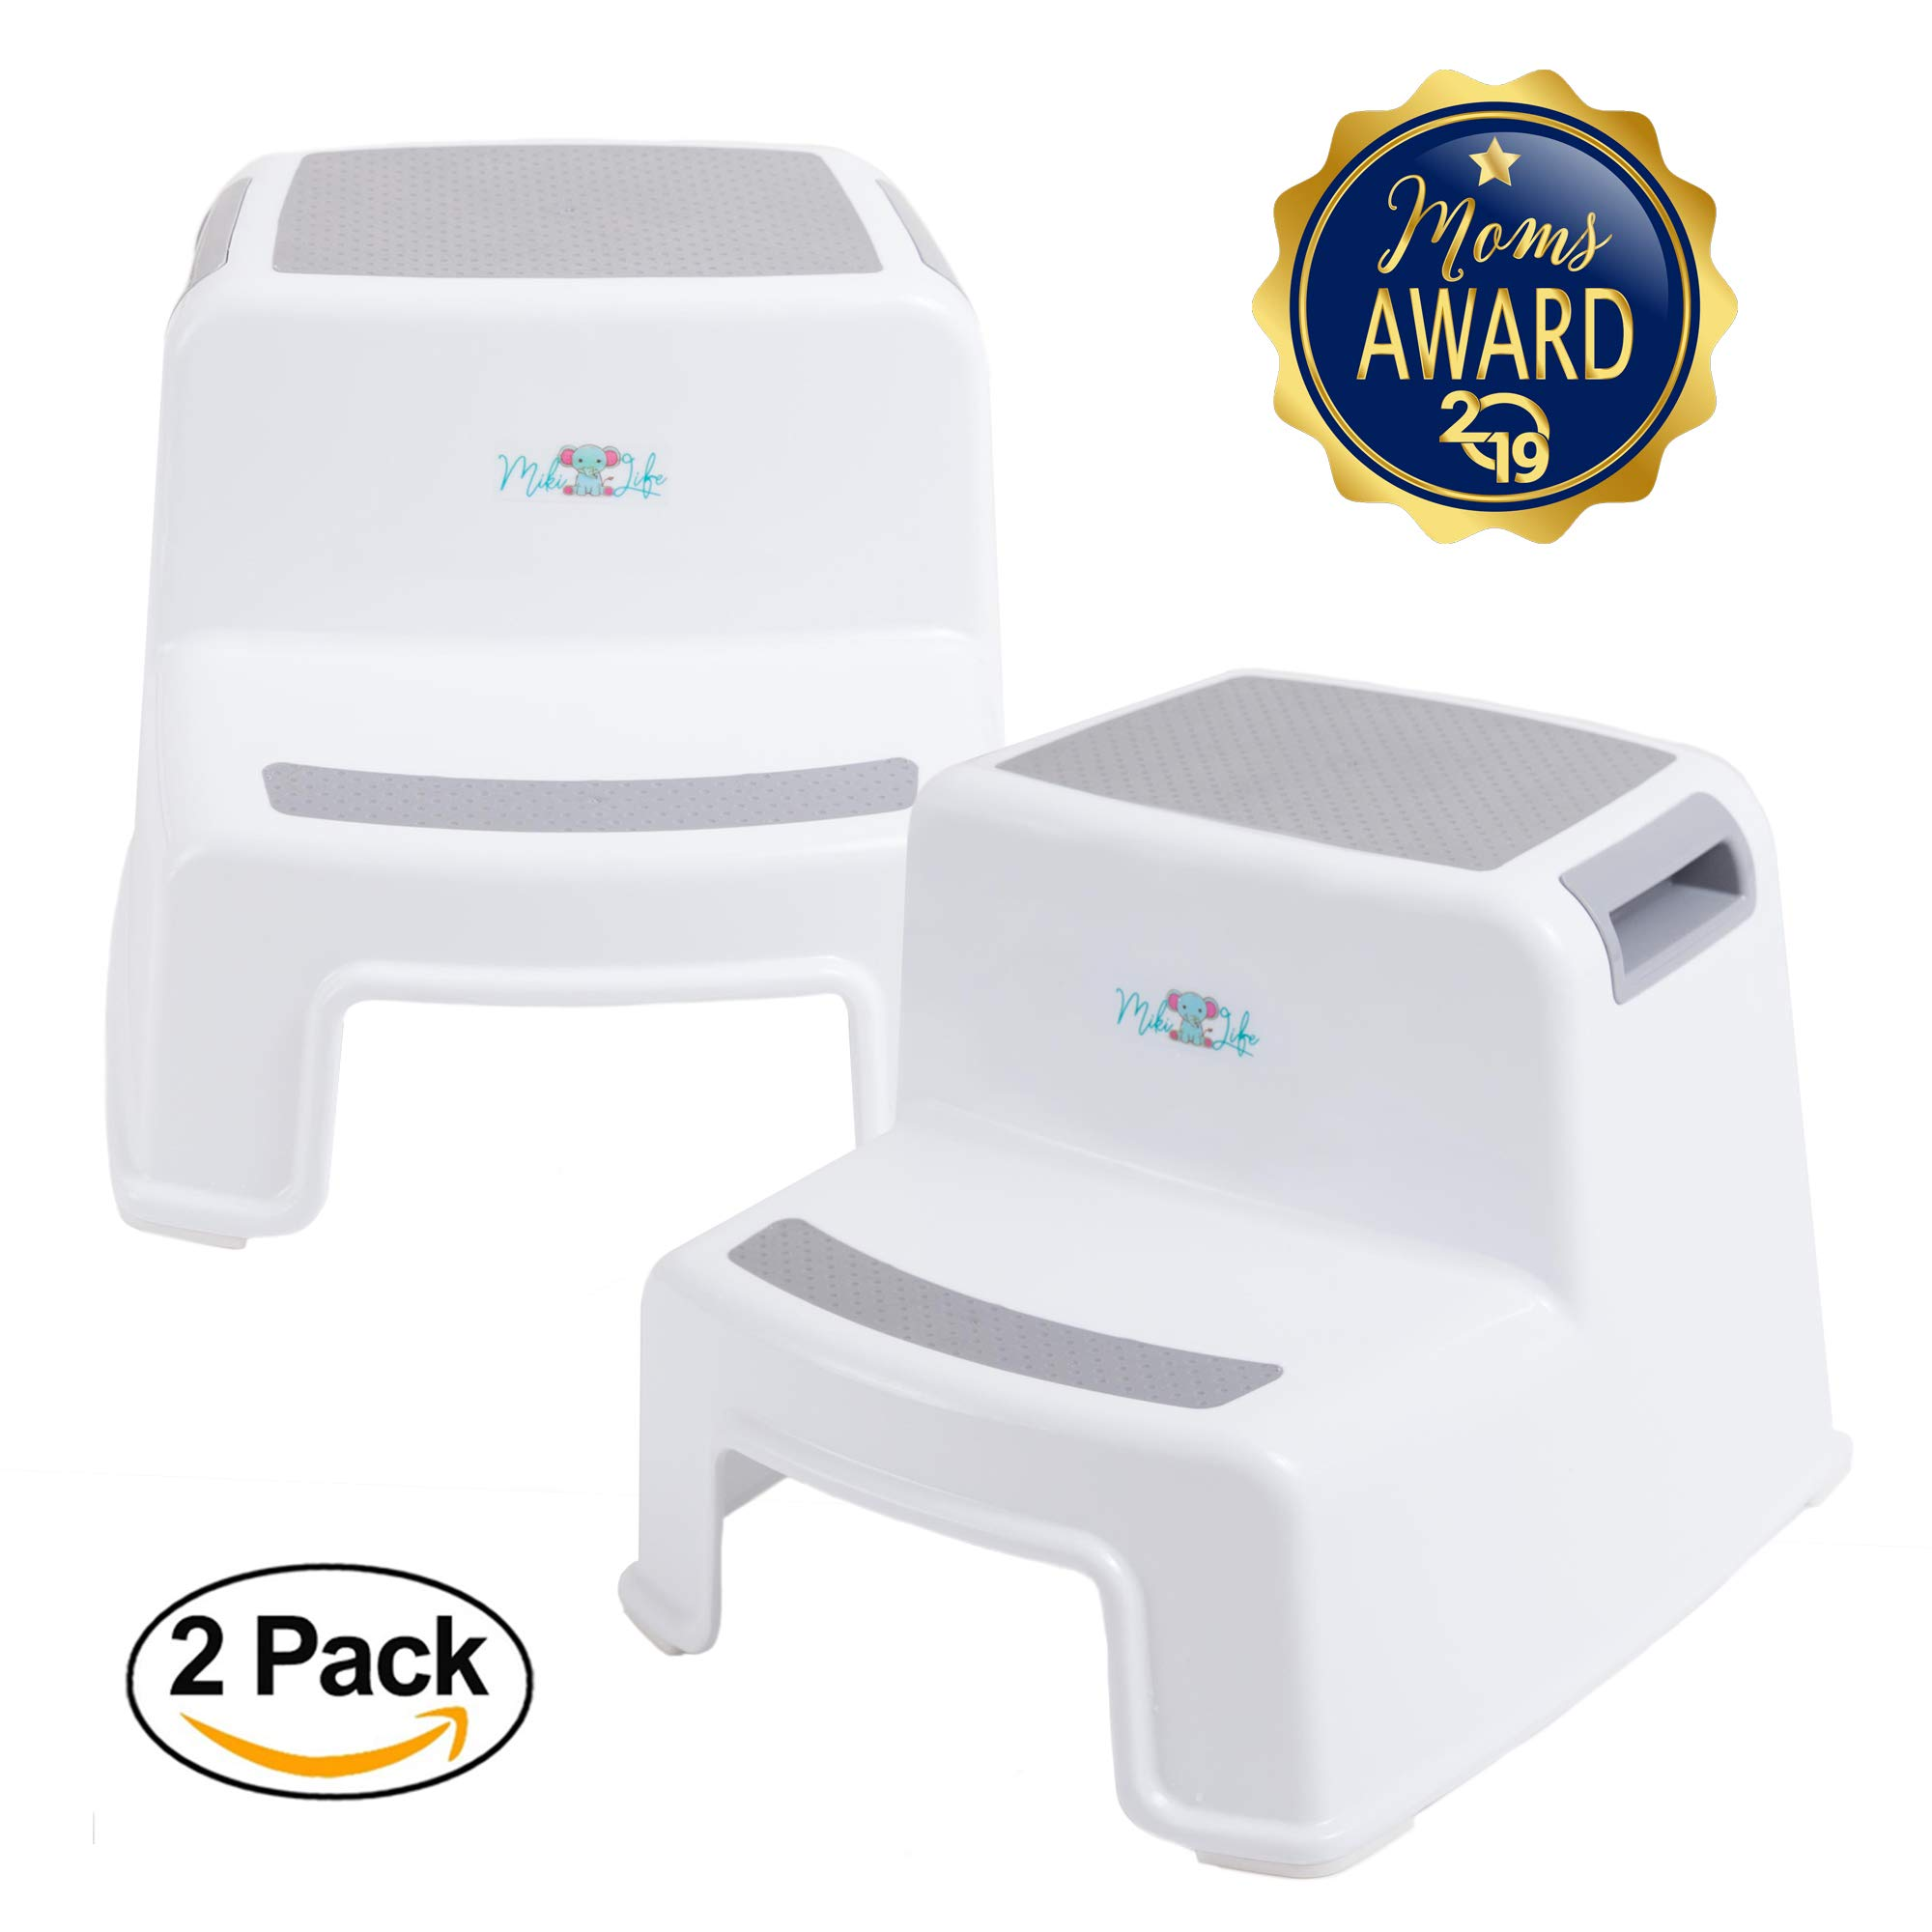 2 Step Stool for Kids | Slip Resistant Soft Grip for Safety | Toddler Two Step Stool for Kitchen, Bathroom and Toilet Potty Easy Training | Dual Height and Wide Step with Carrying Handles (2 Pack) by MikiLife